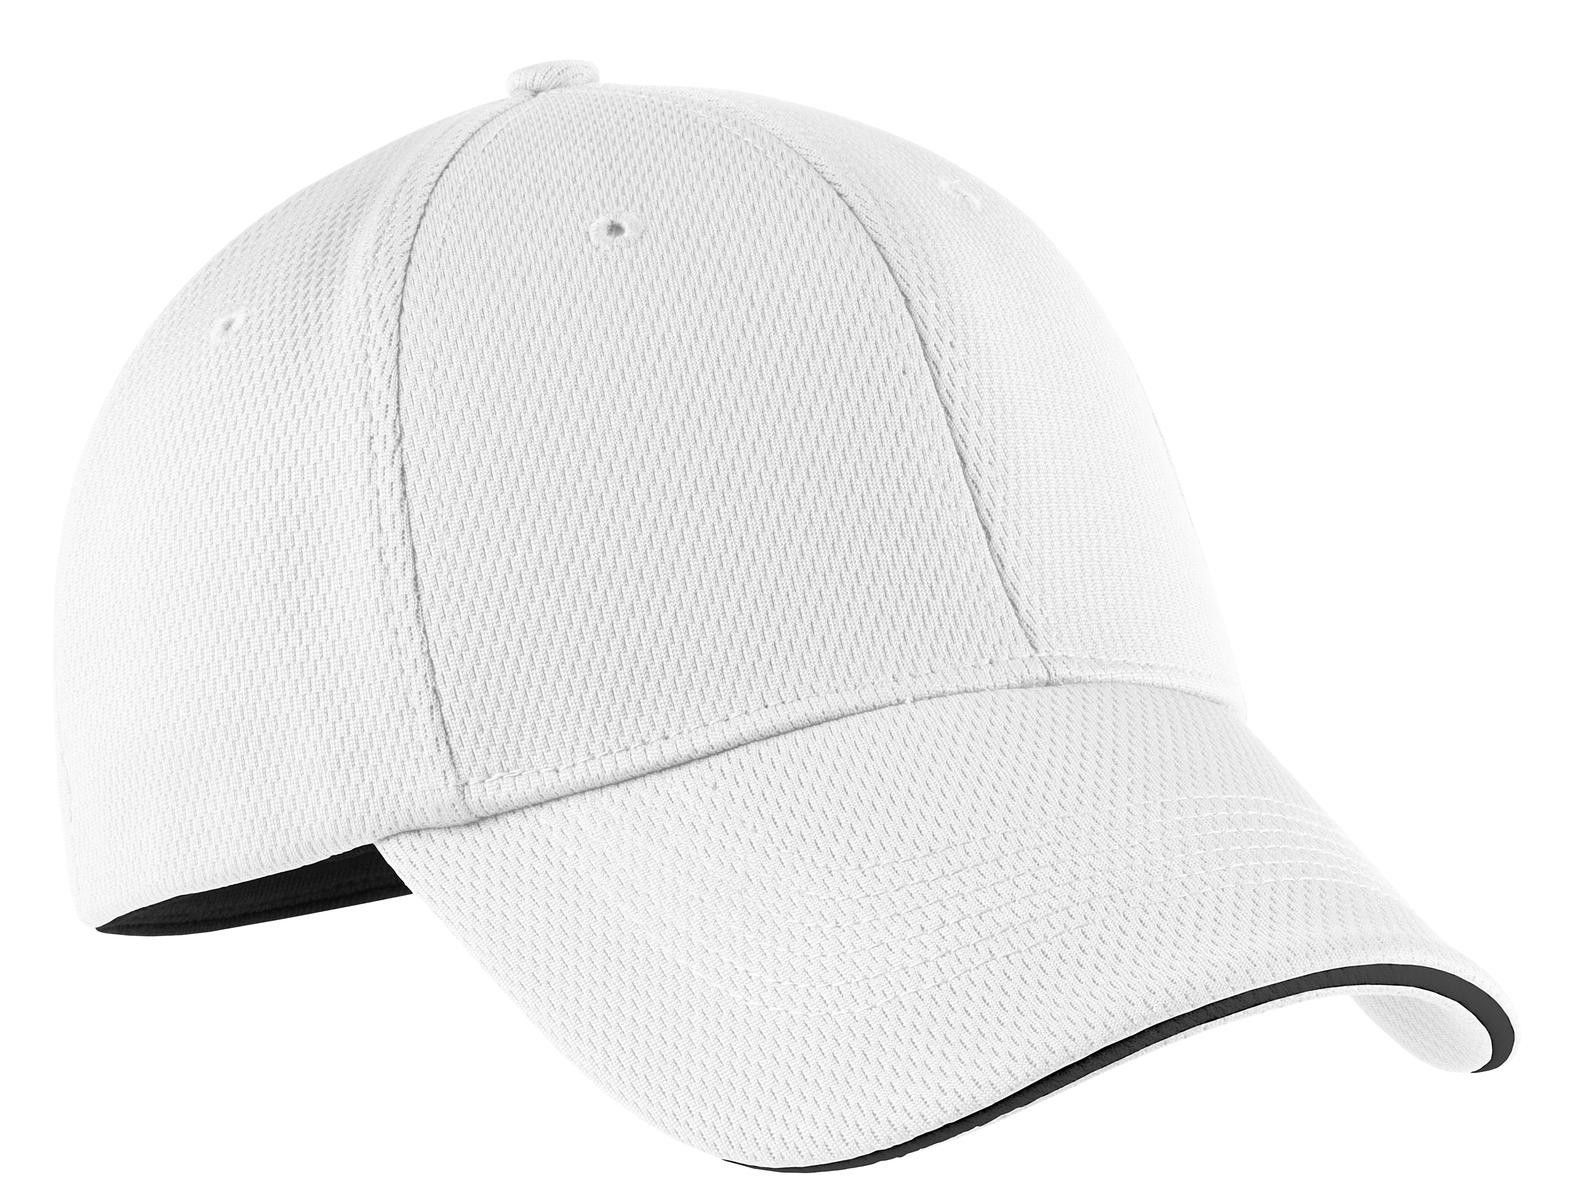 f77c863776e Nike Golf - Dri-FIT Mesh Swoosh Flex Sandwich Cap.333115 White ...